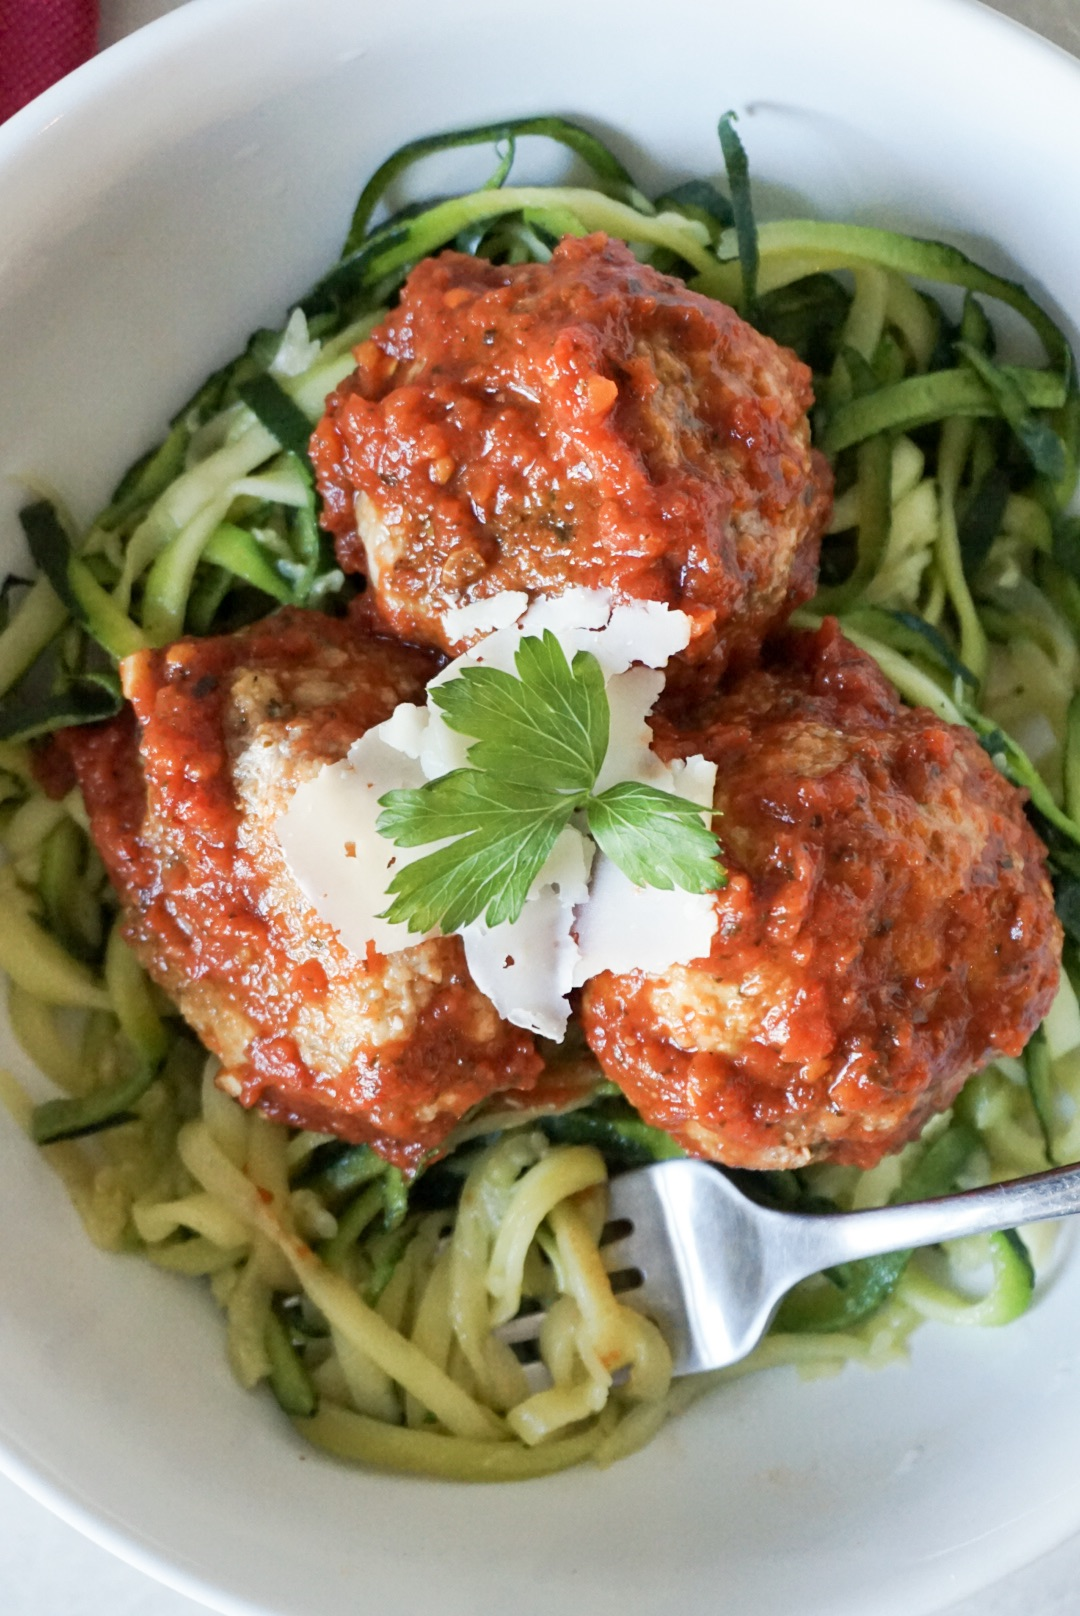 Healthy Baked Turkey Meatballs with homemade marinara and zucchini noodles